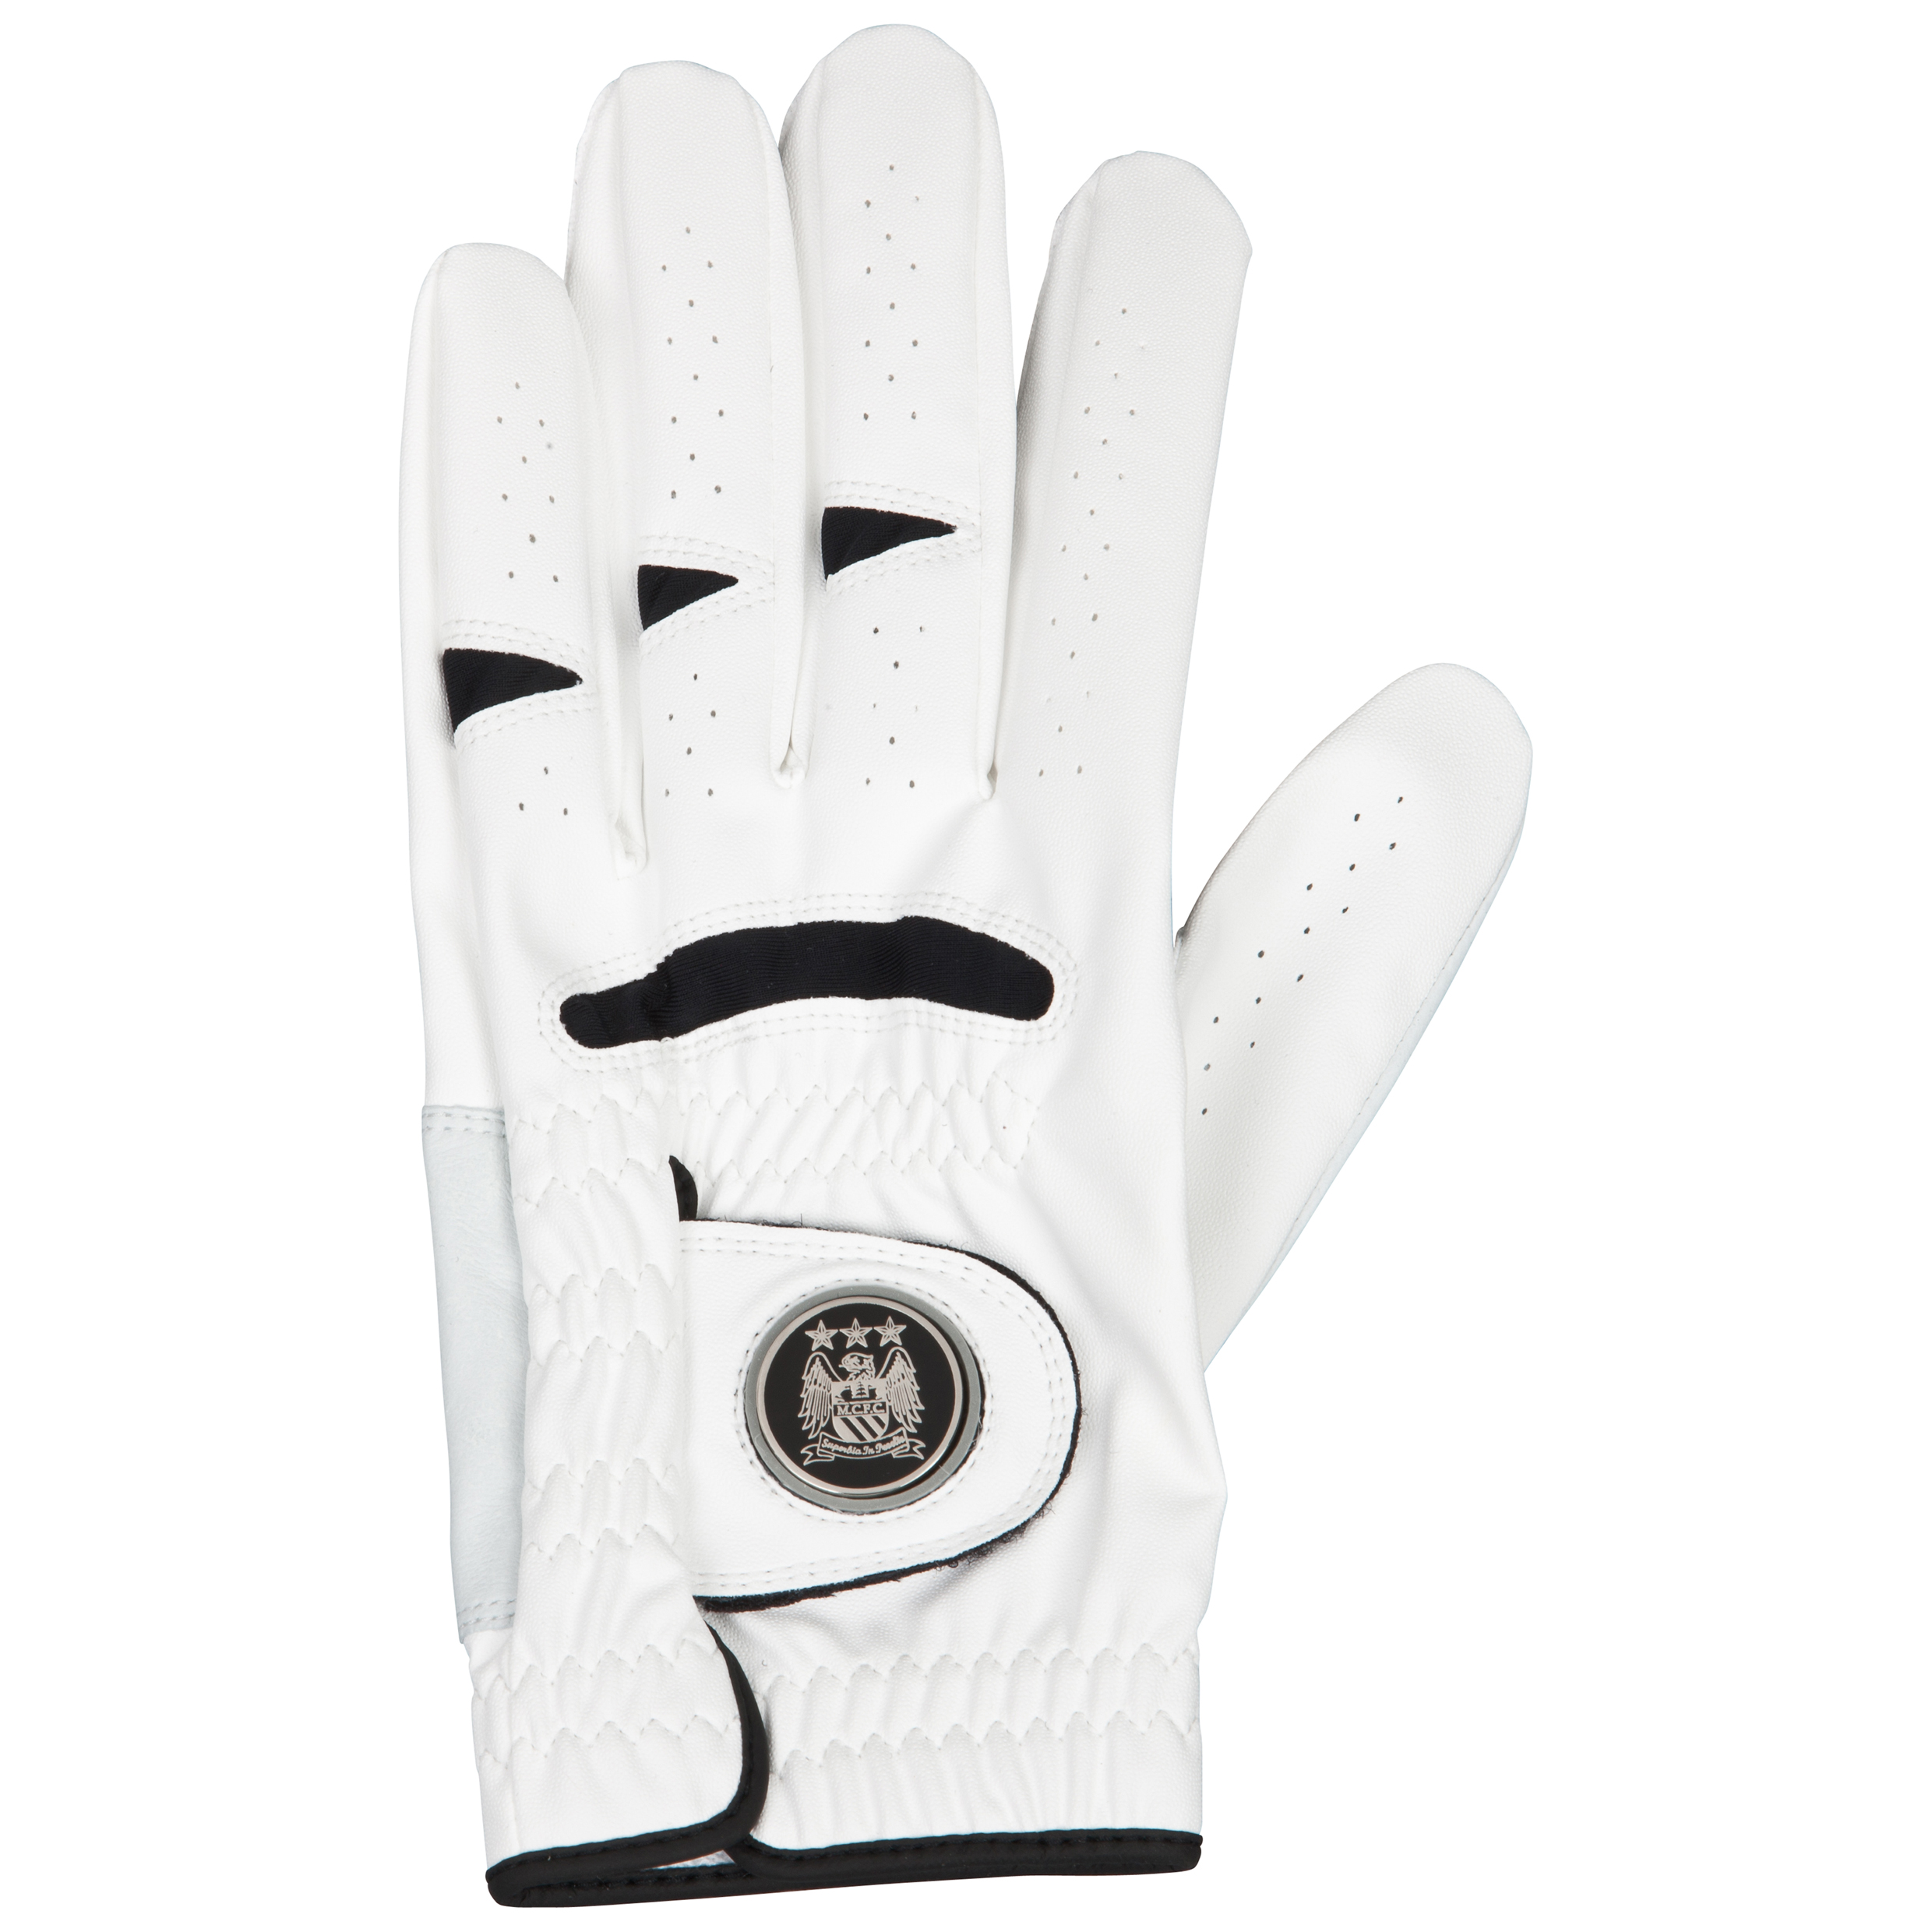 Manchester City Executive Golf Glove